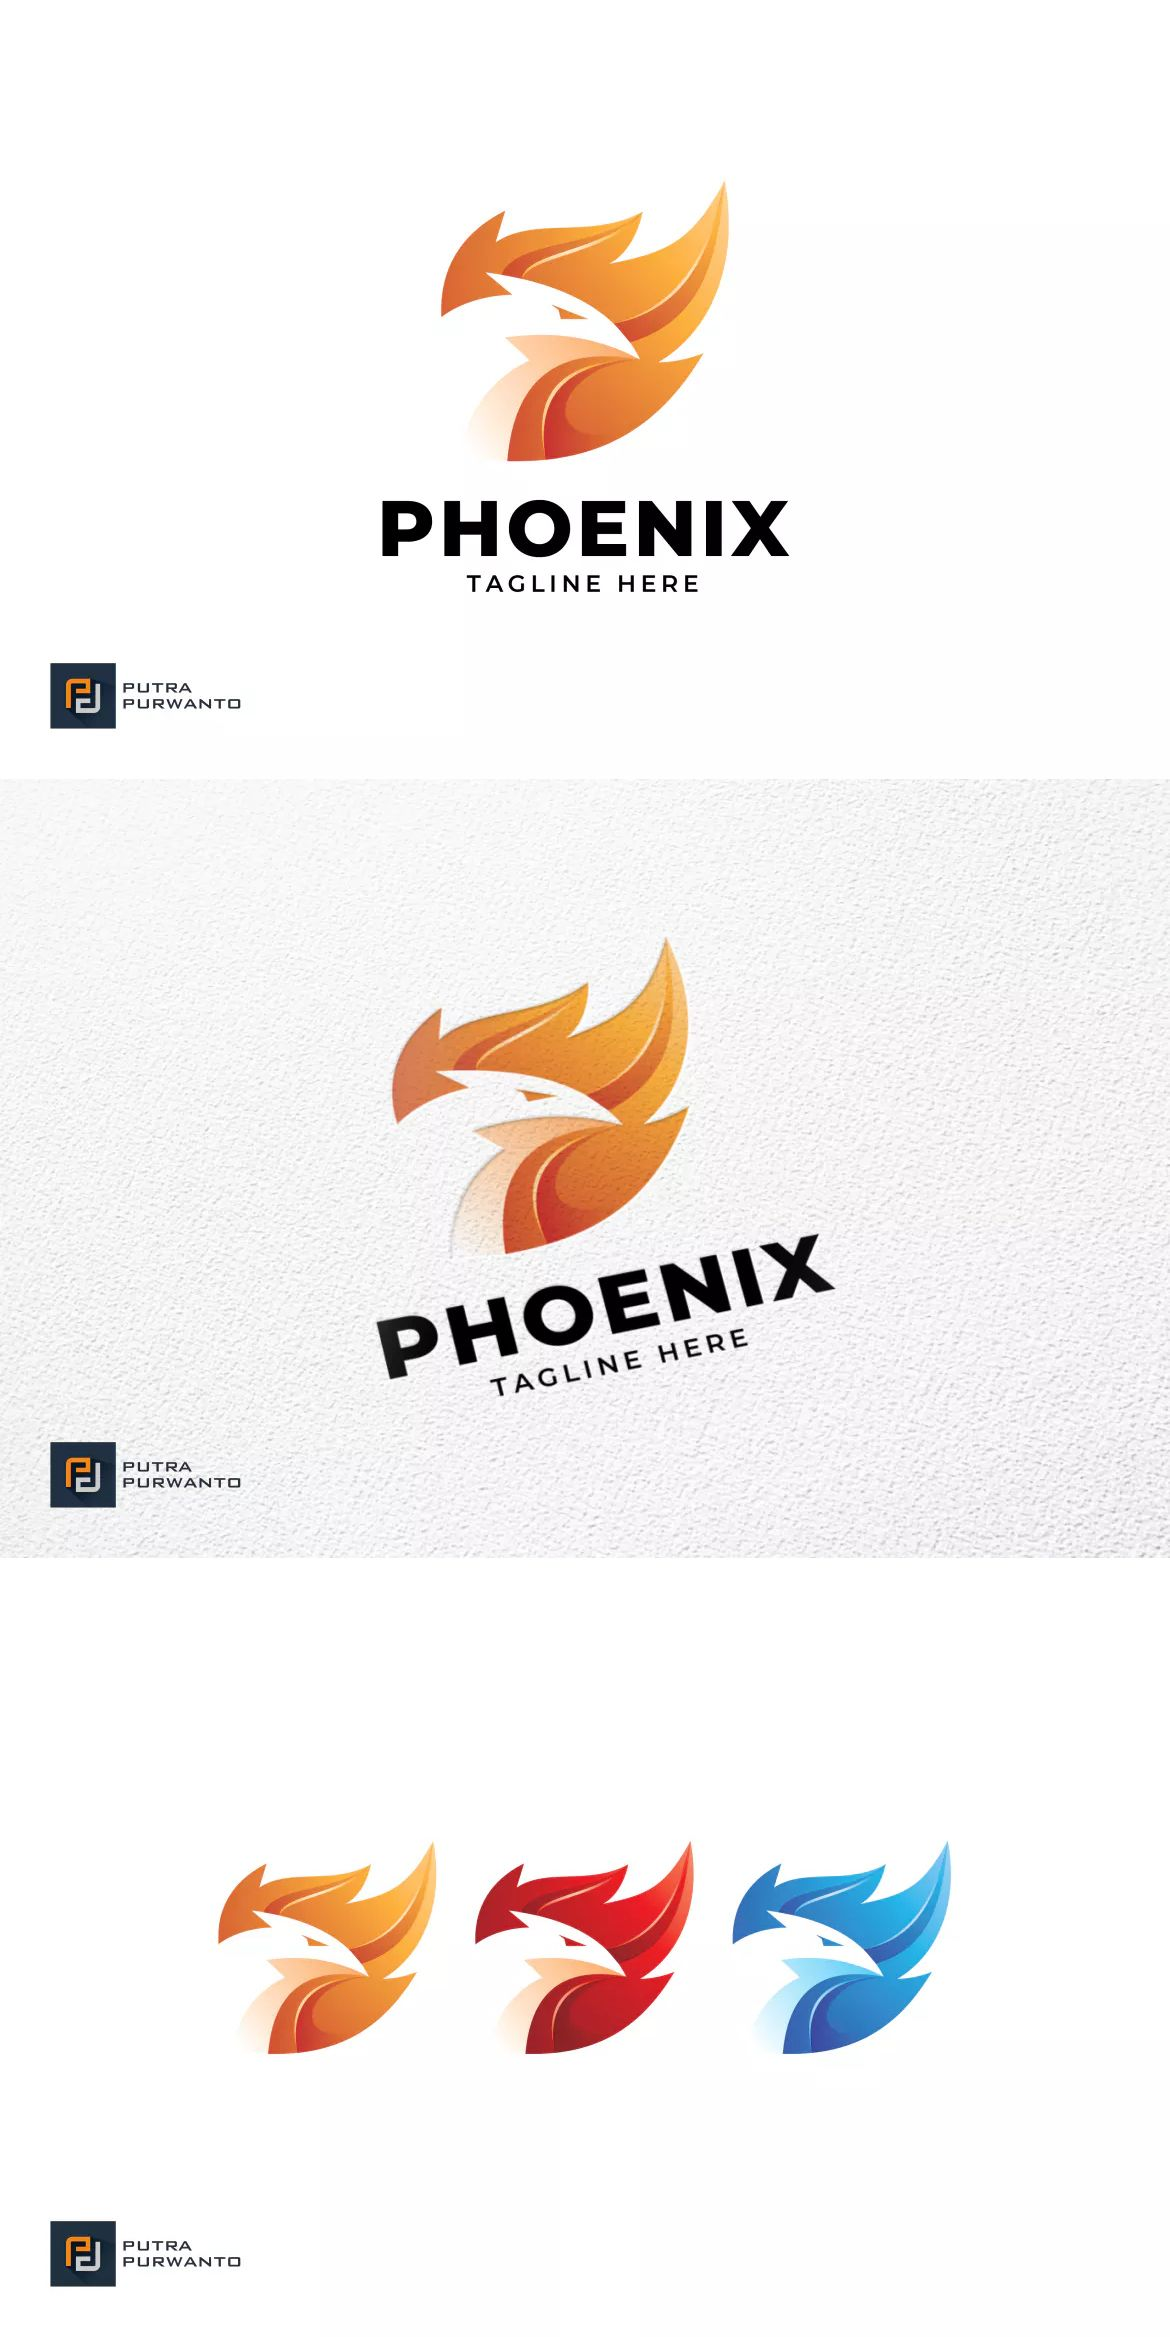 Phoenix Logo Template By Putra Purwanto On Envato Elements Logo Templates Fantasy Logo Golden Ratio Logo Design